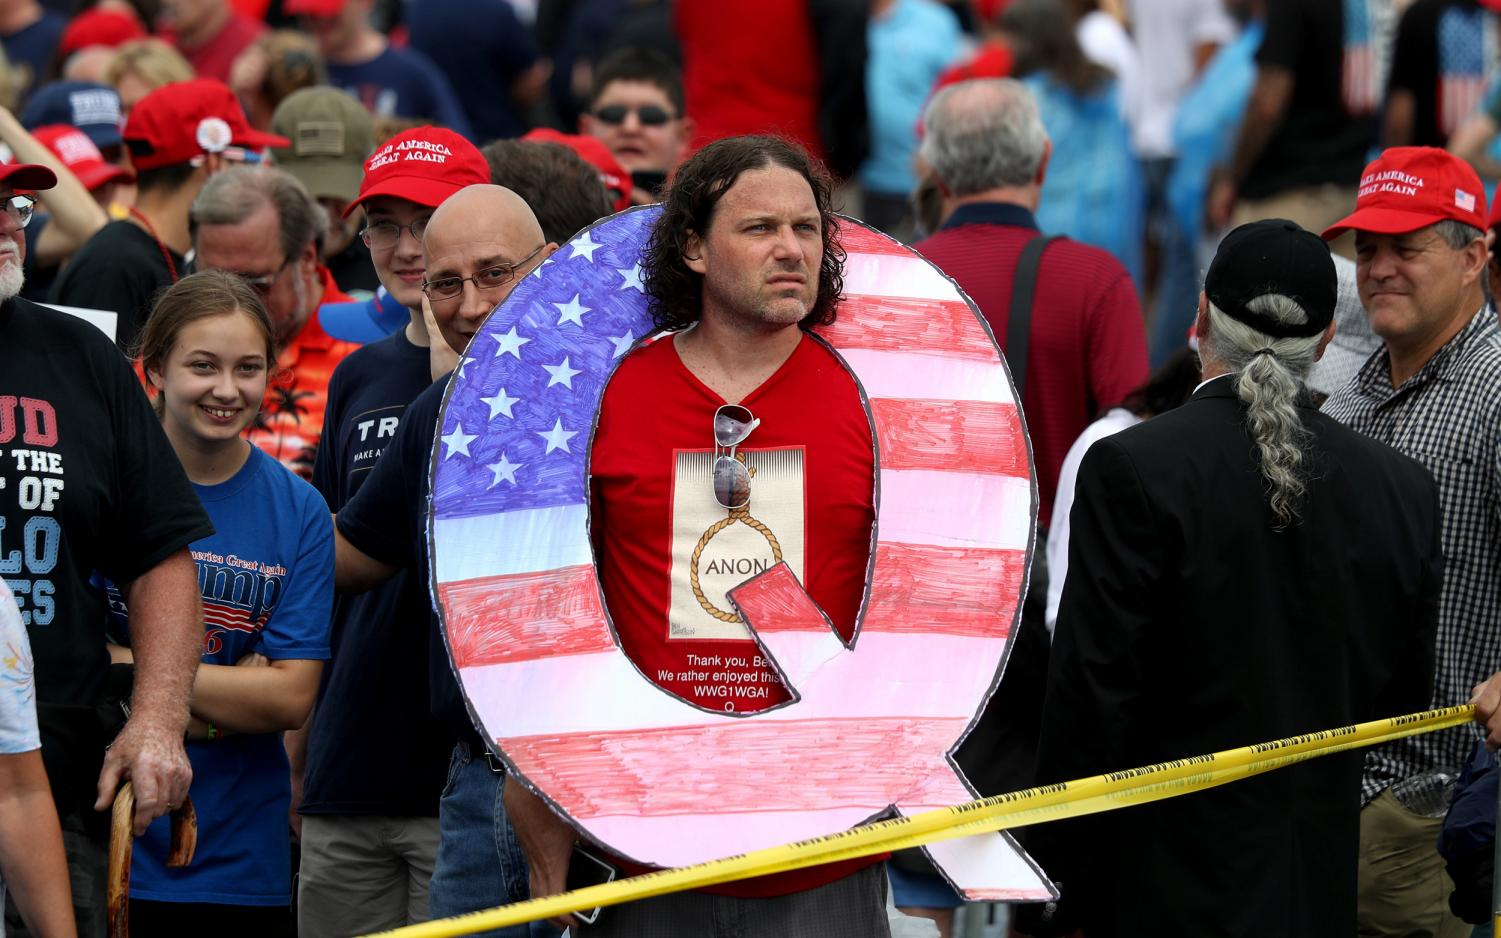 How extreme devotion to Trump and QAnon poses a unique threat